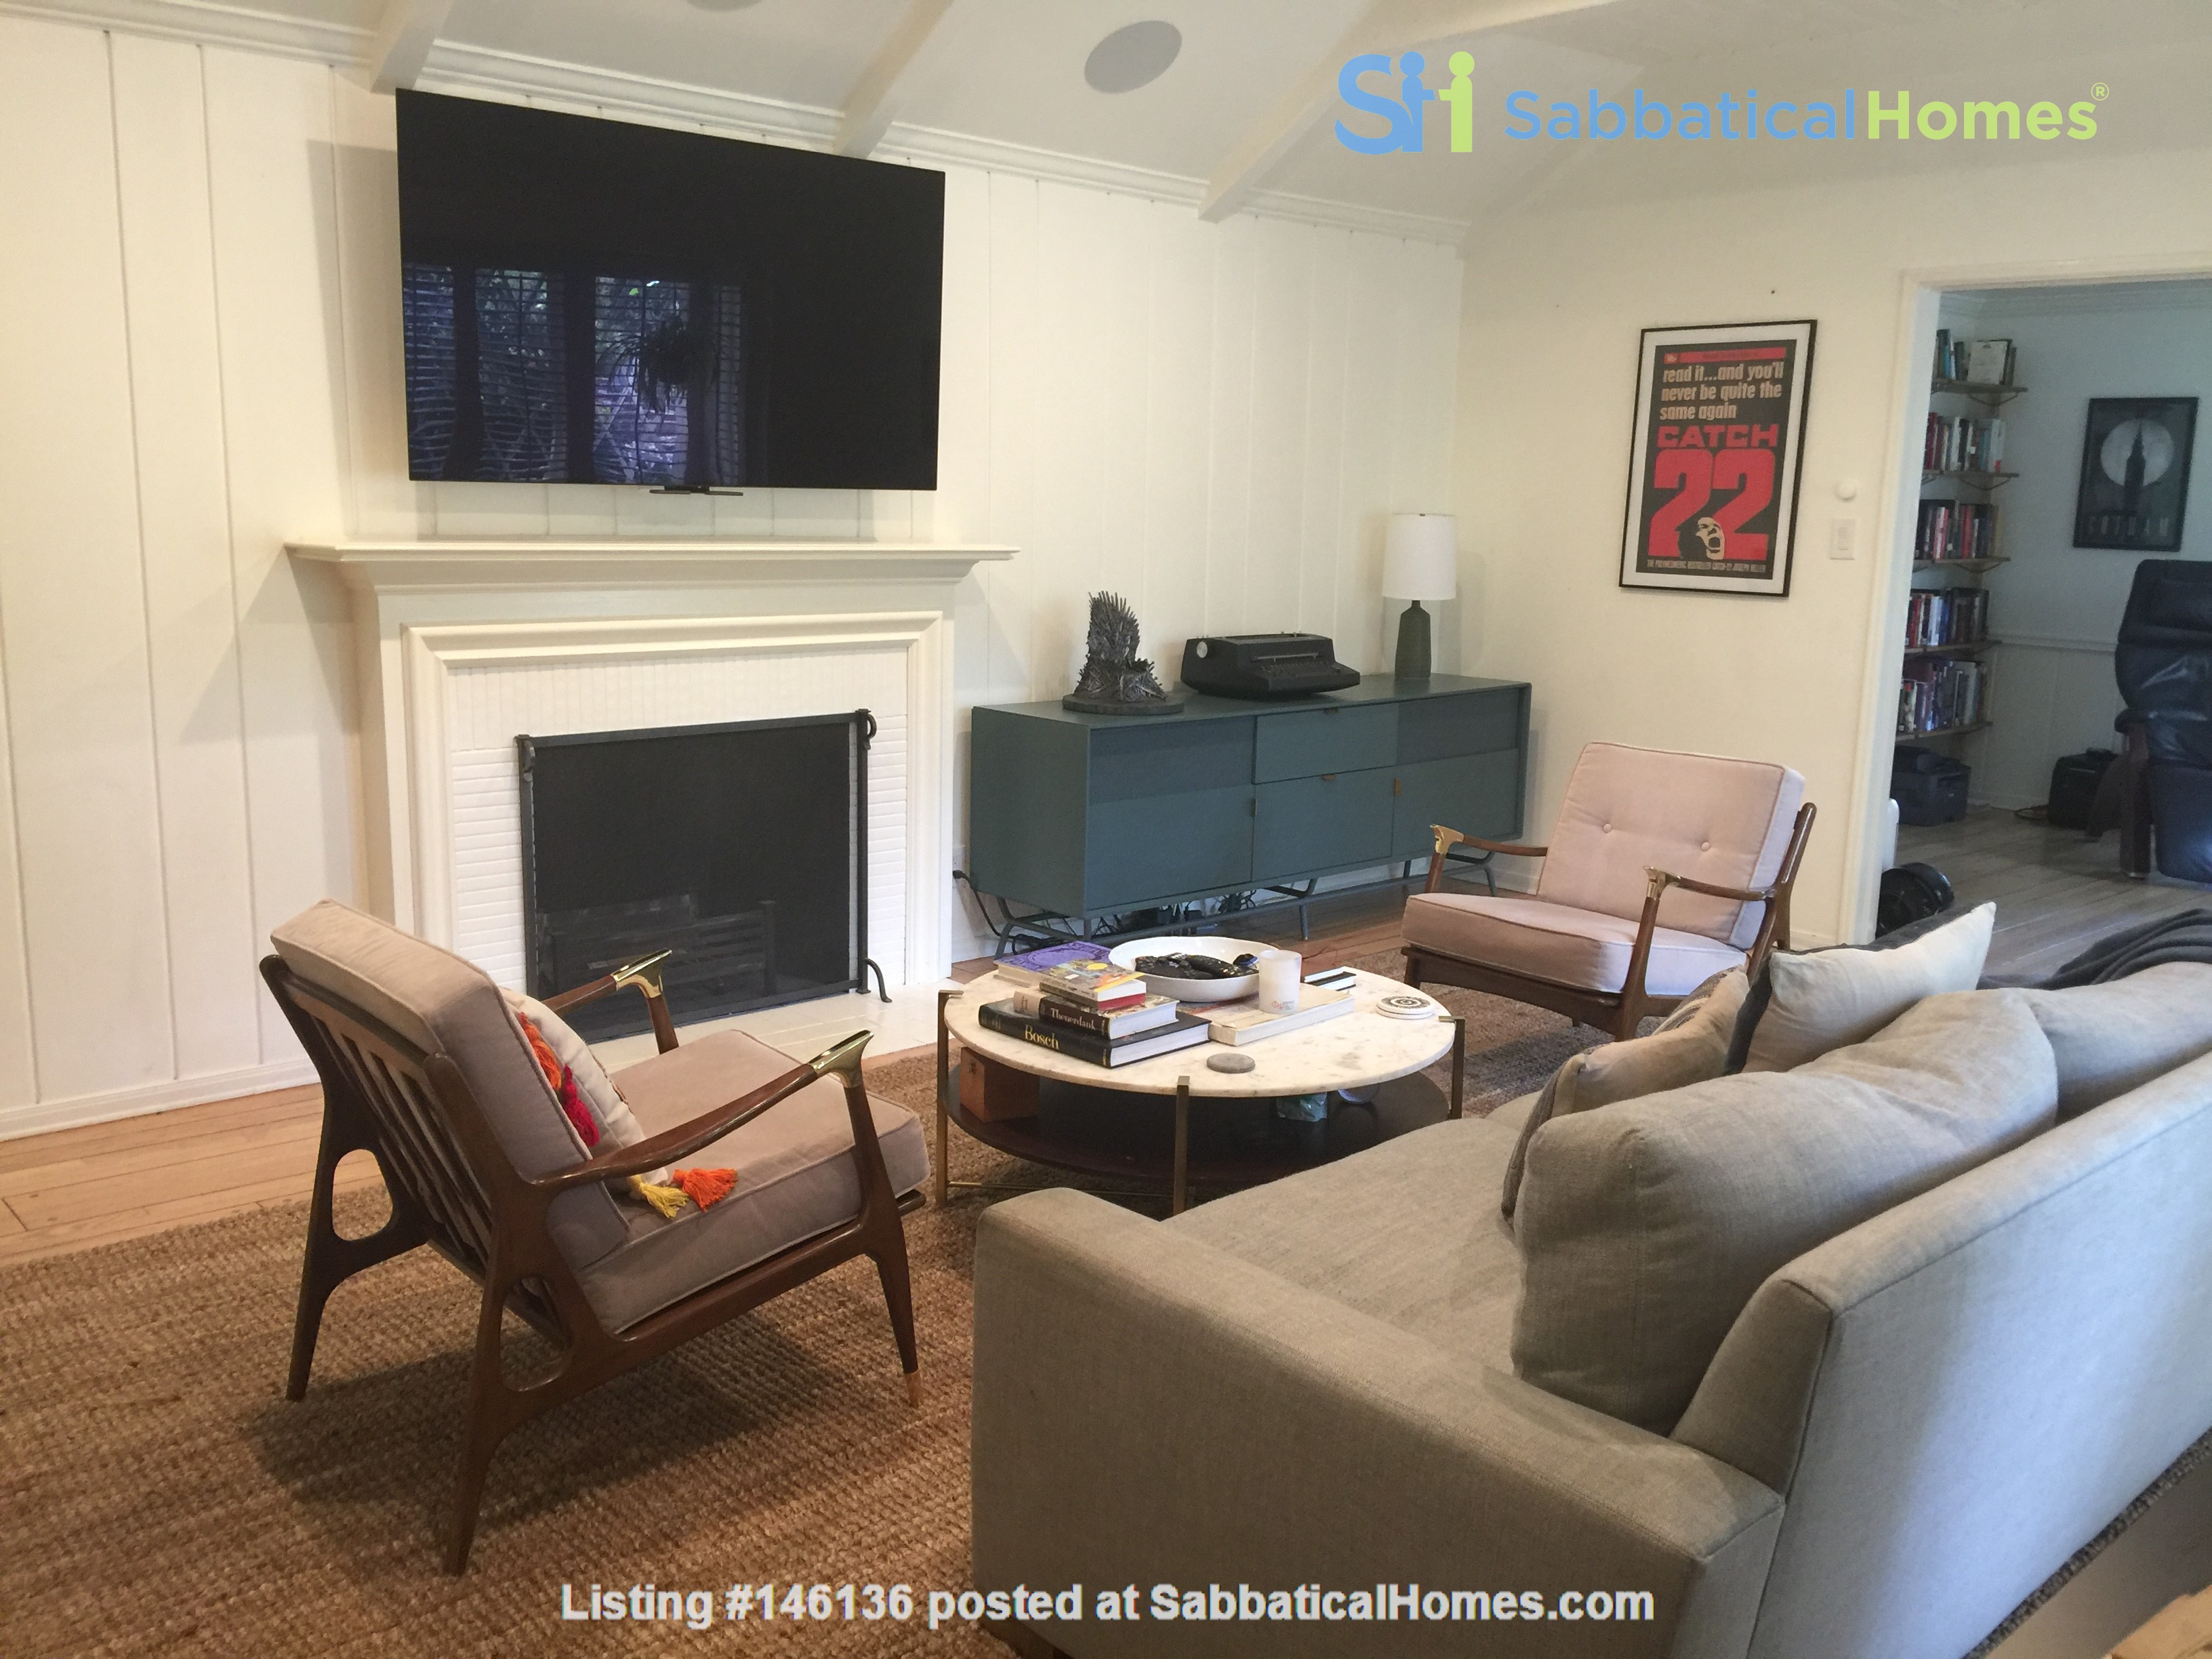 Charming storybook home with great location and pool Home Rental in Los Angeles 4